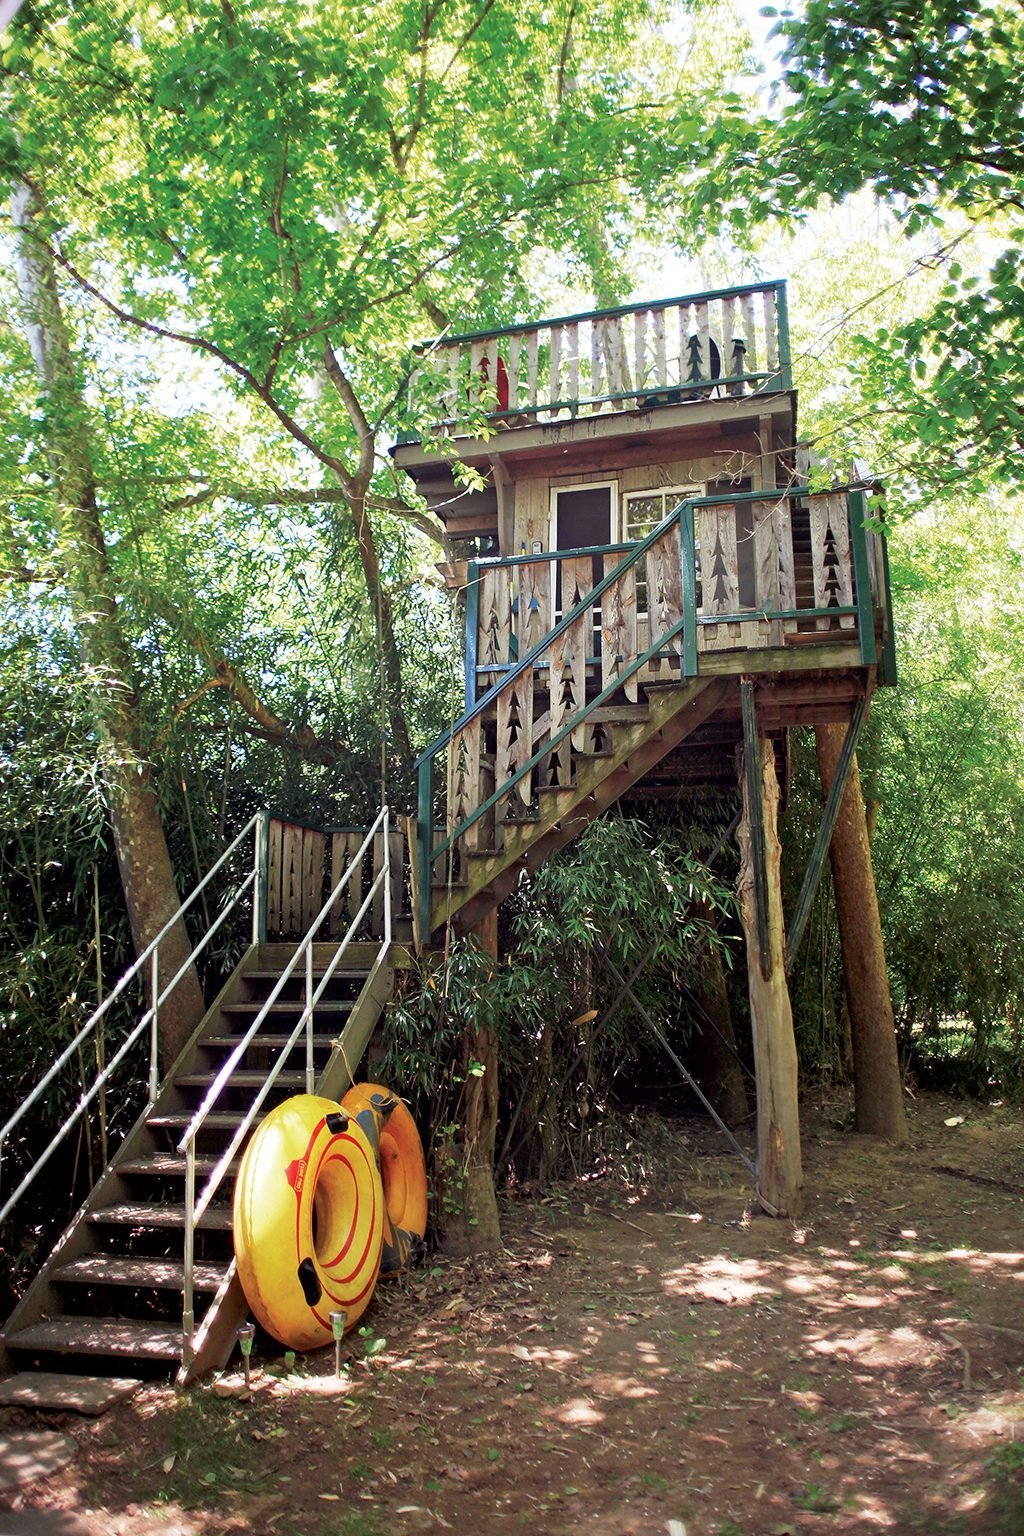 Tree House Photos 4 Epic Treehouses Near Dc You Can Rent For A Memorable Night Away